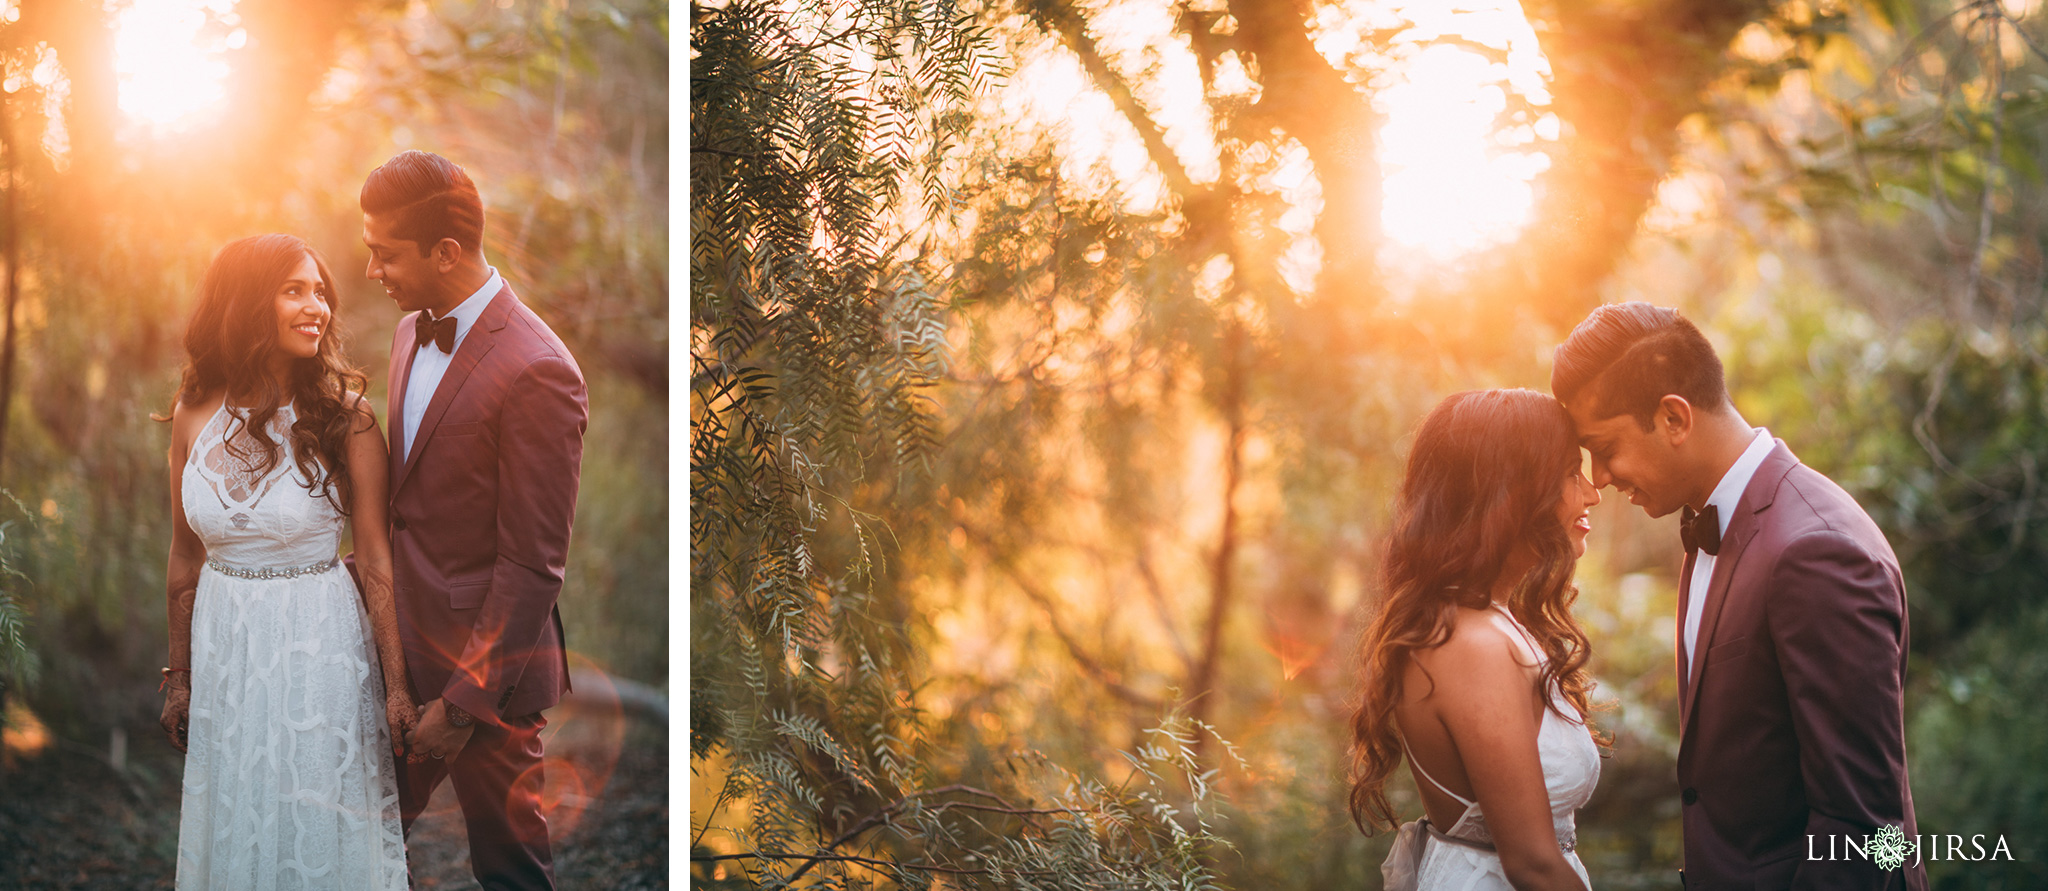 ethereal open air resort wedding sunset couple session